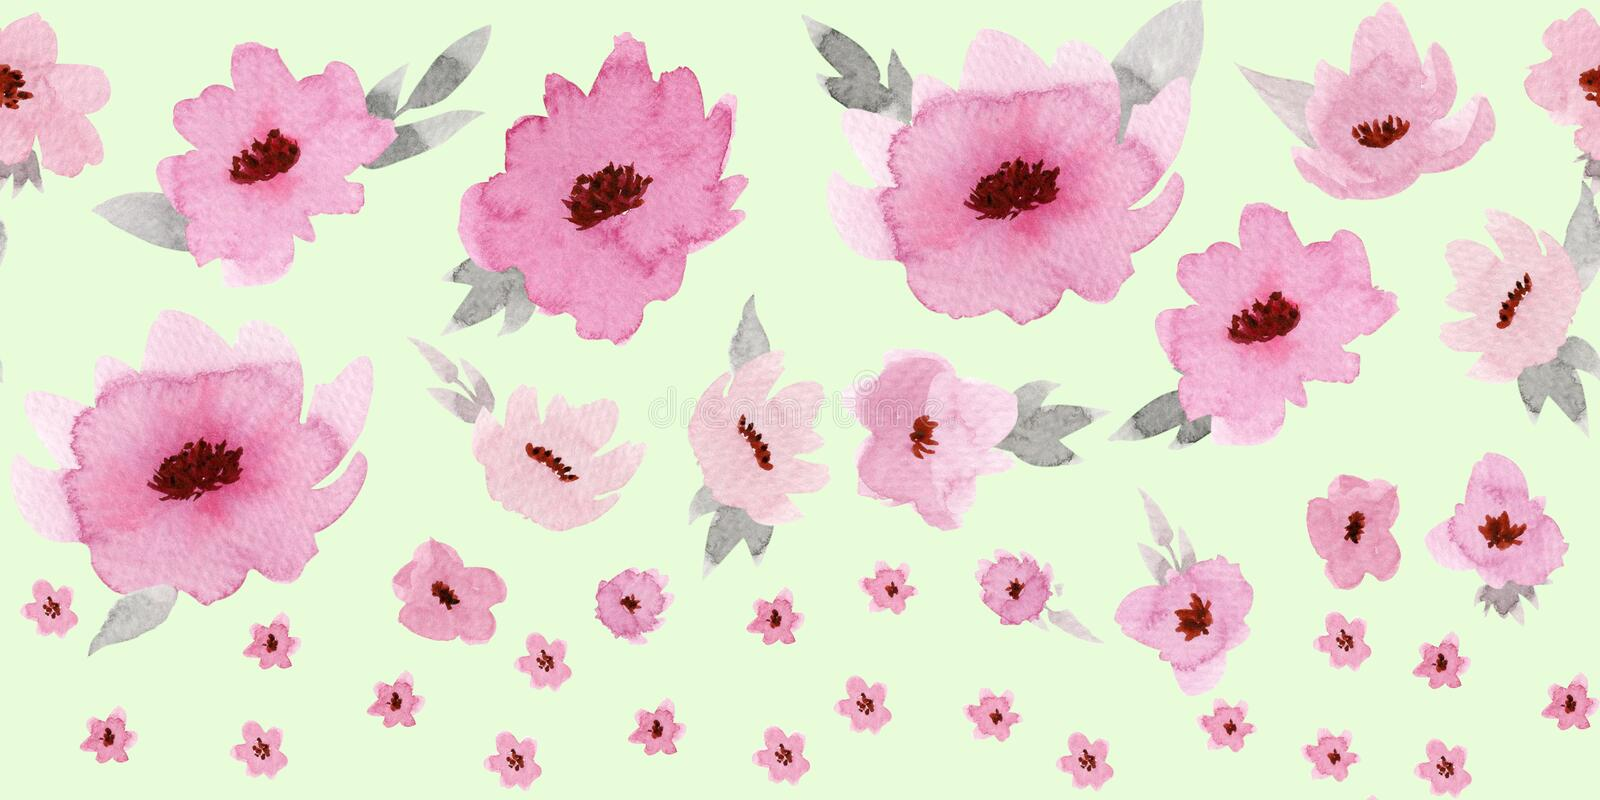 Horizontal seamless border with pastel rose flowers on ligth green background.  royalty free illustration